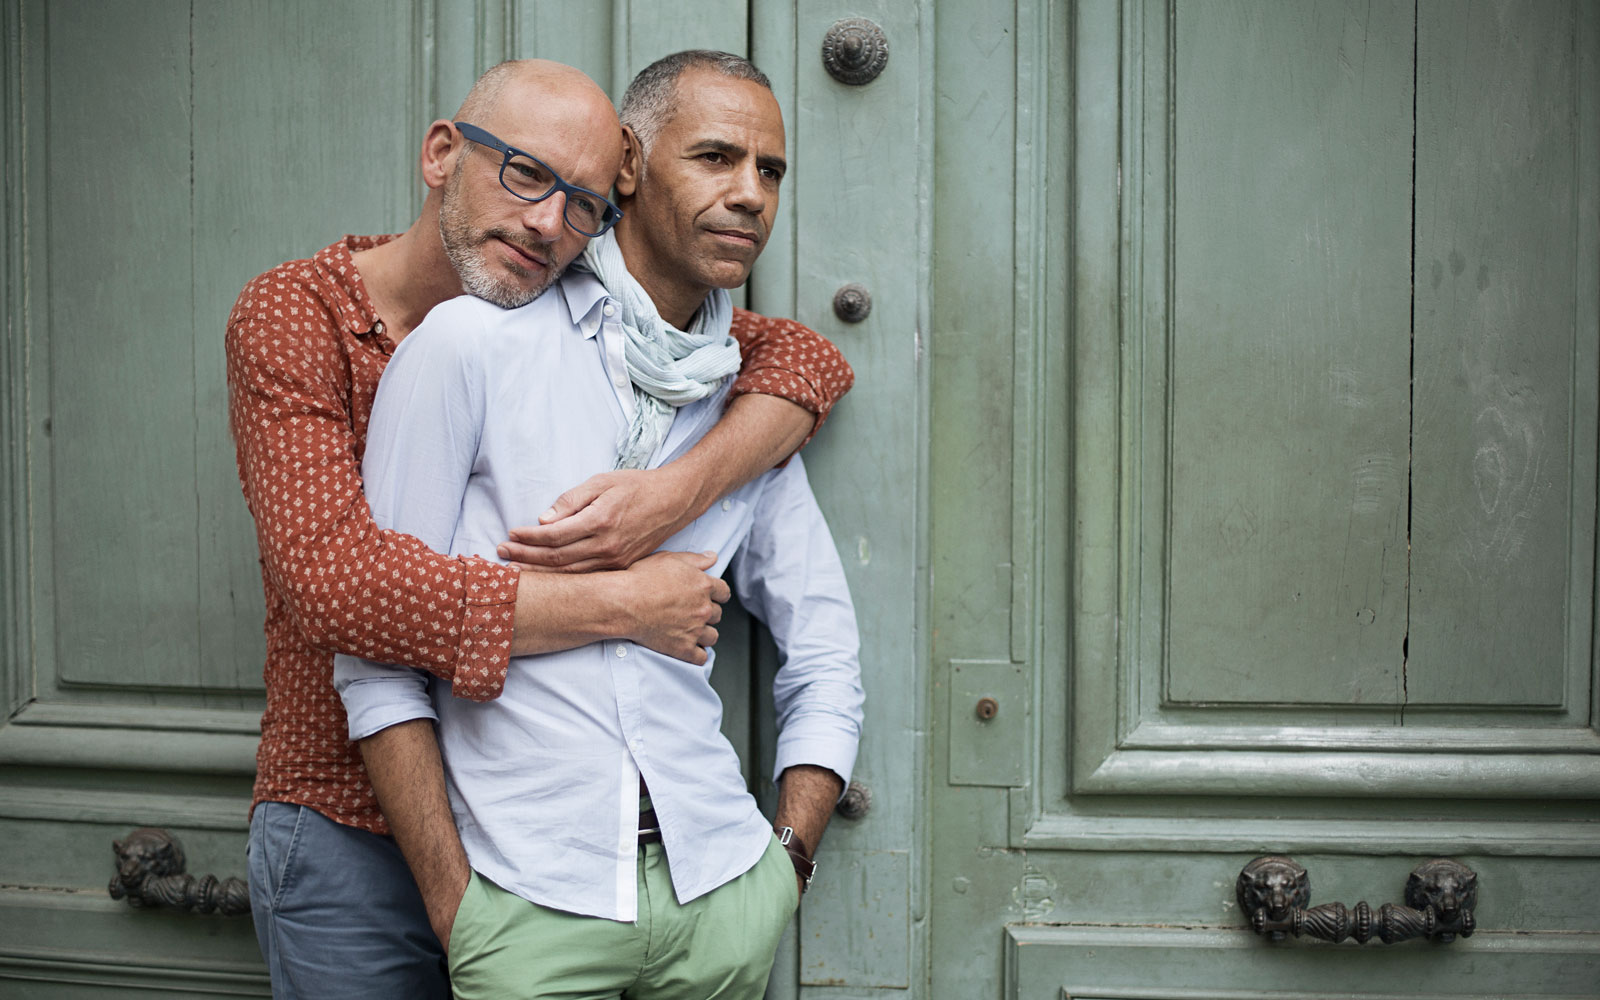 95% of LGBT Couples Are Uncomfortable Showing Affection Abroad